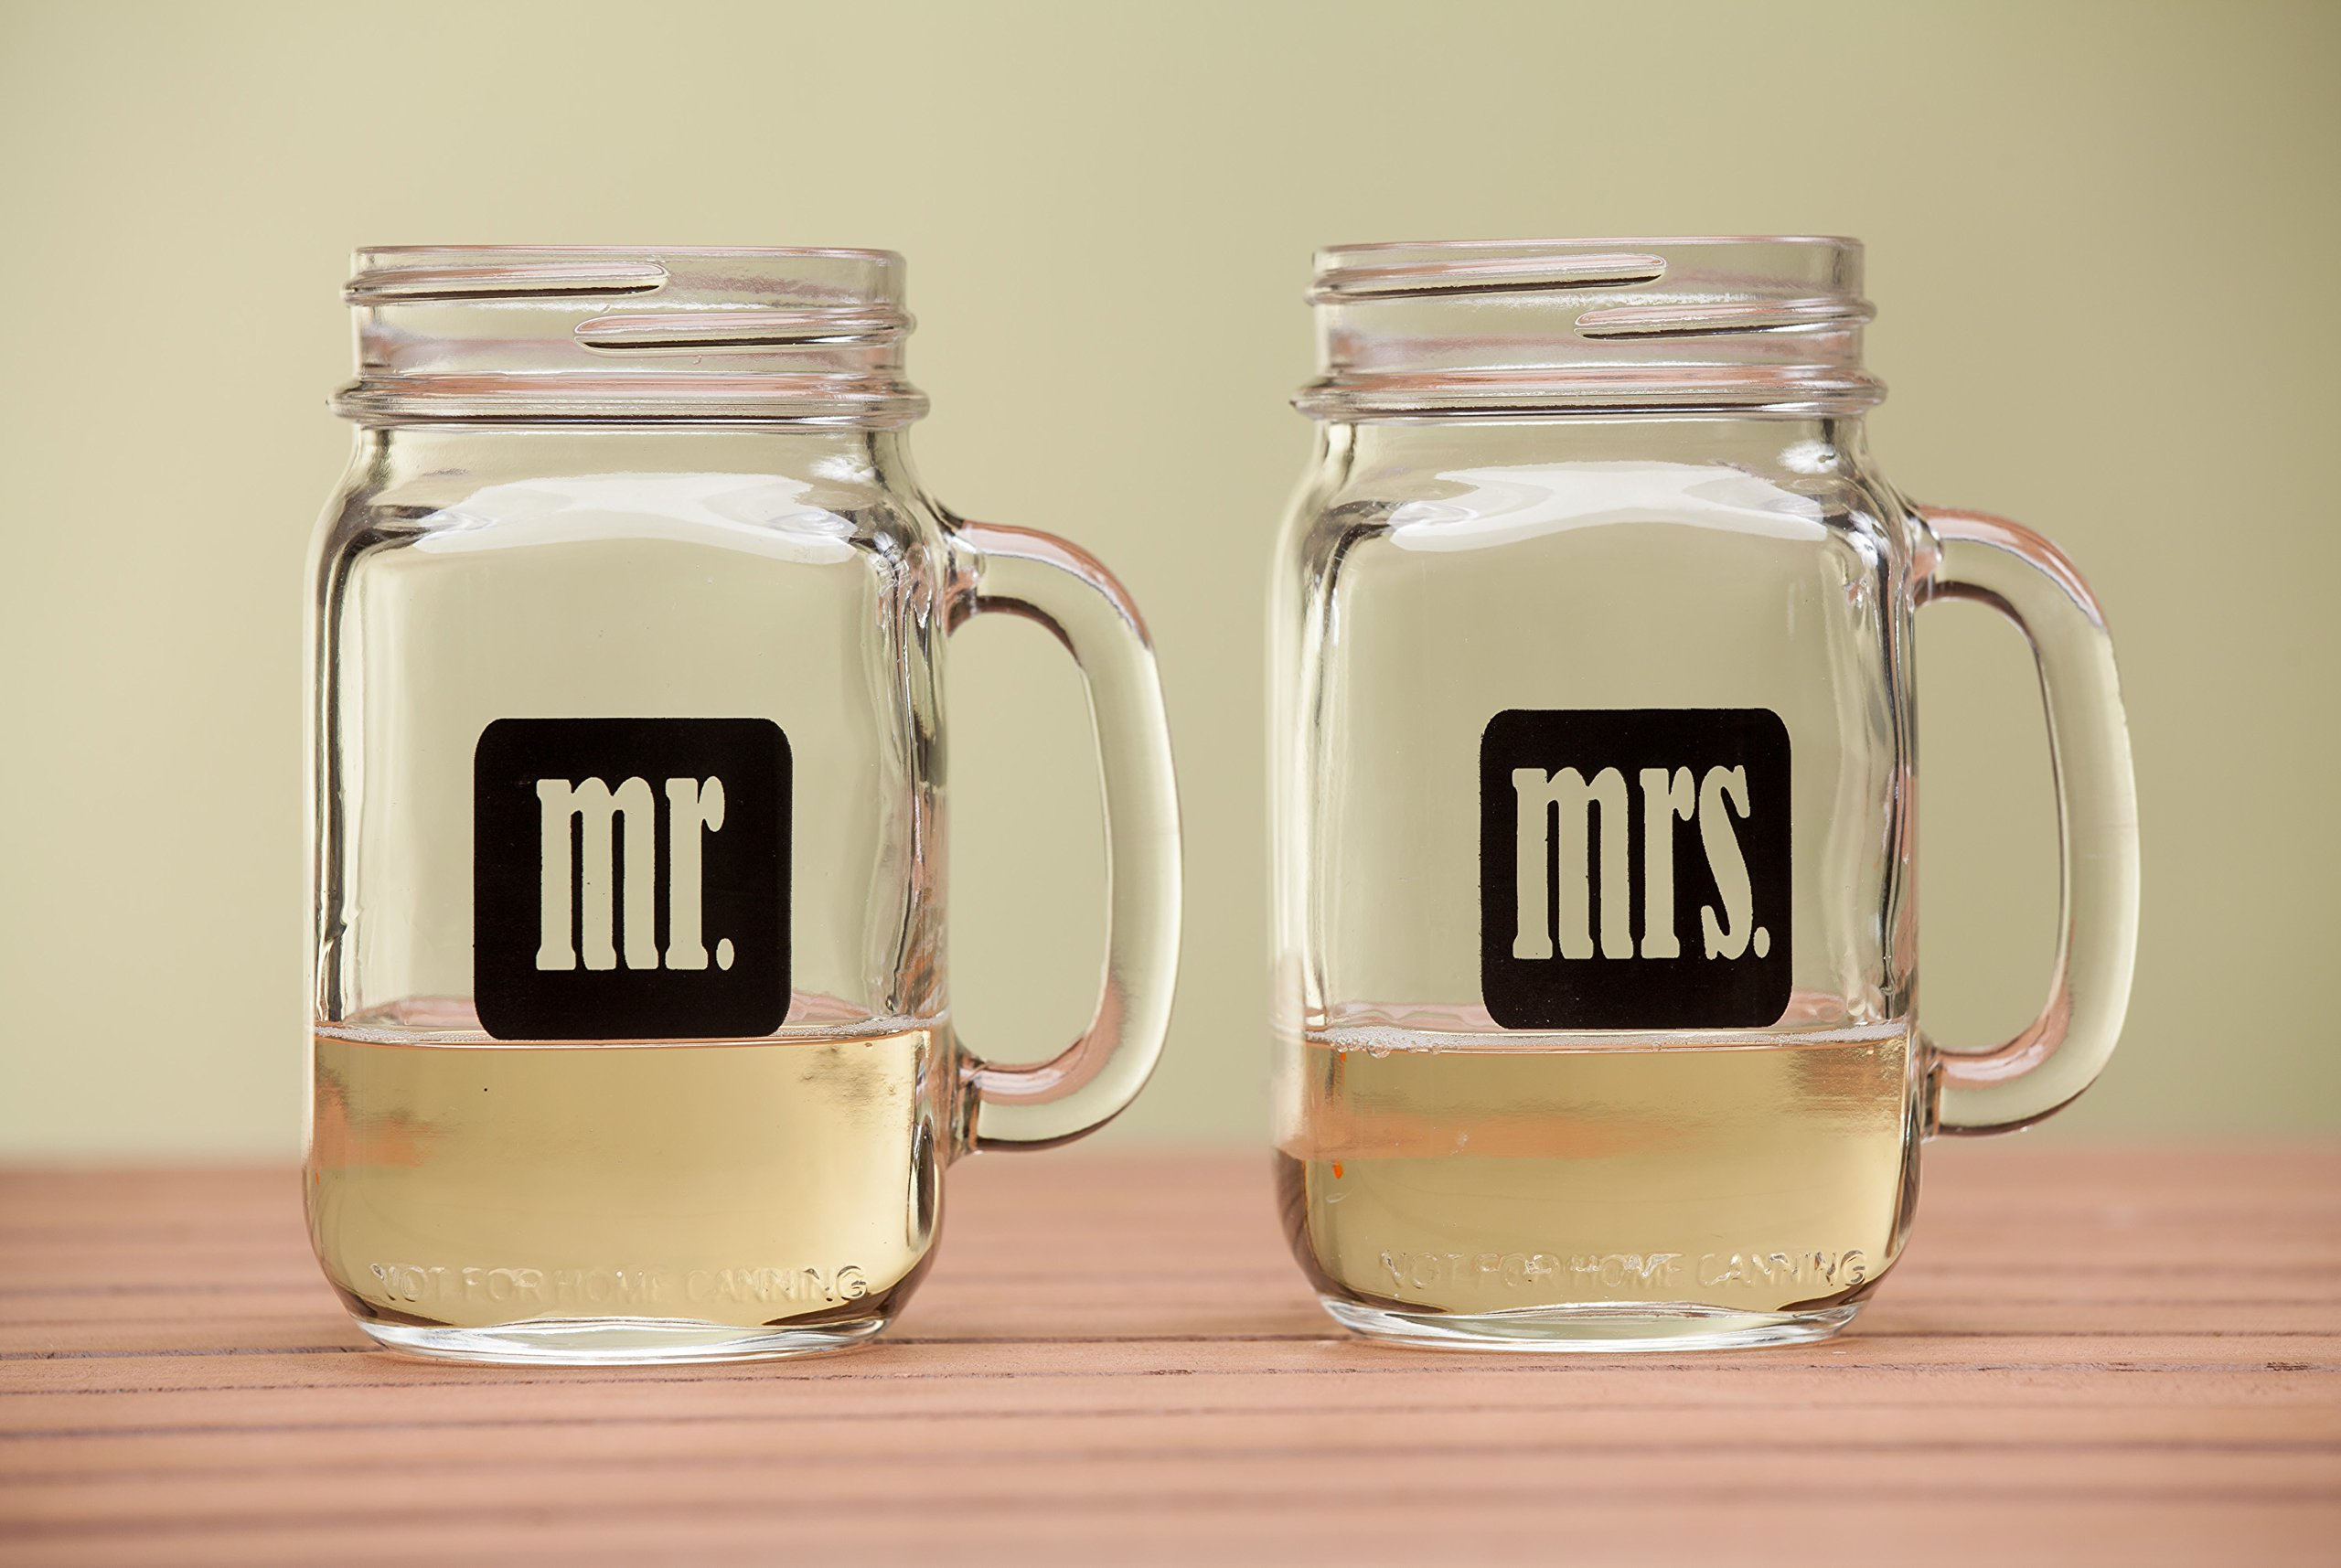 Mr. & Mrs. Mason Jars - Glass Drinking Glasses Set With Gift Box - For Couples - Engagement, Wedding, Anniversary, House Warming, Hostess Gift, 16 oz by Smart Tart Design (Image #4)